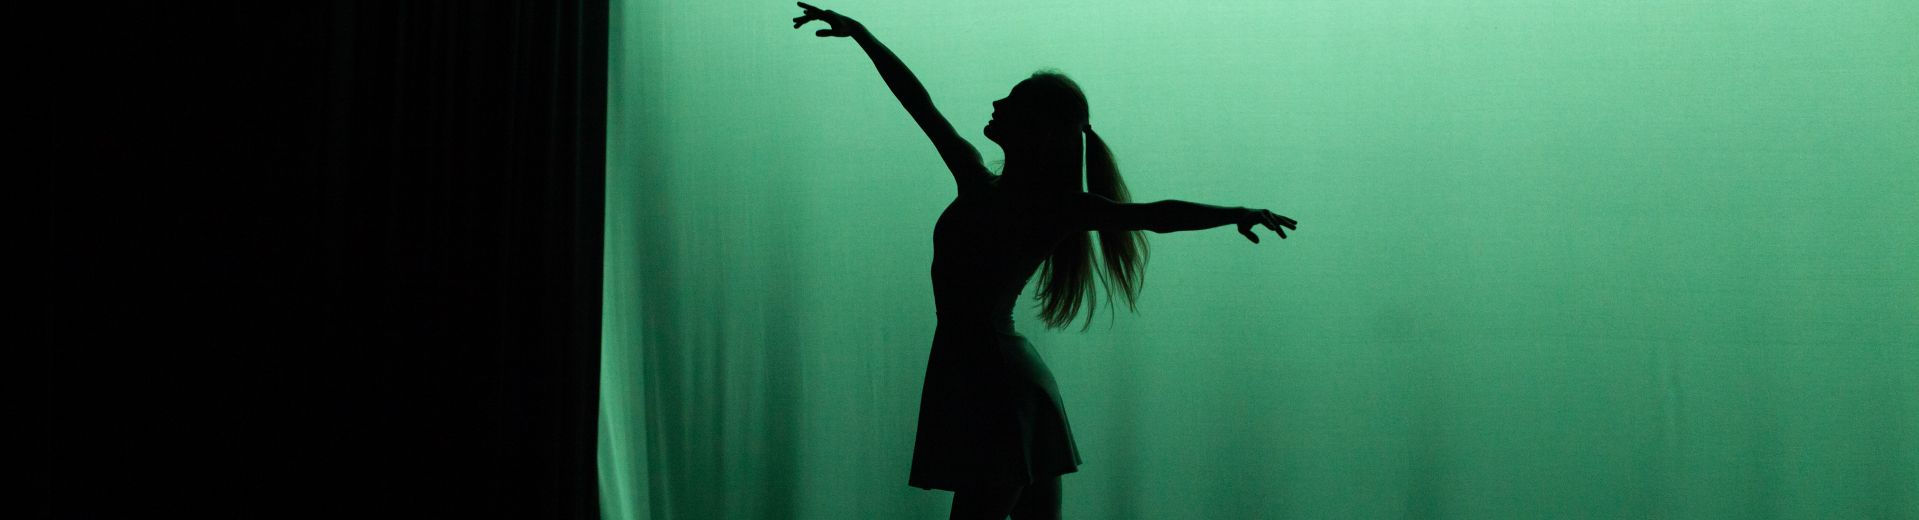 Full-body silhouette of ballet dancer, backlit on stage